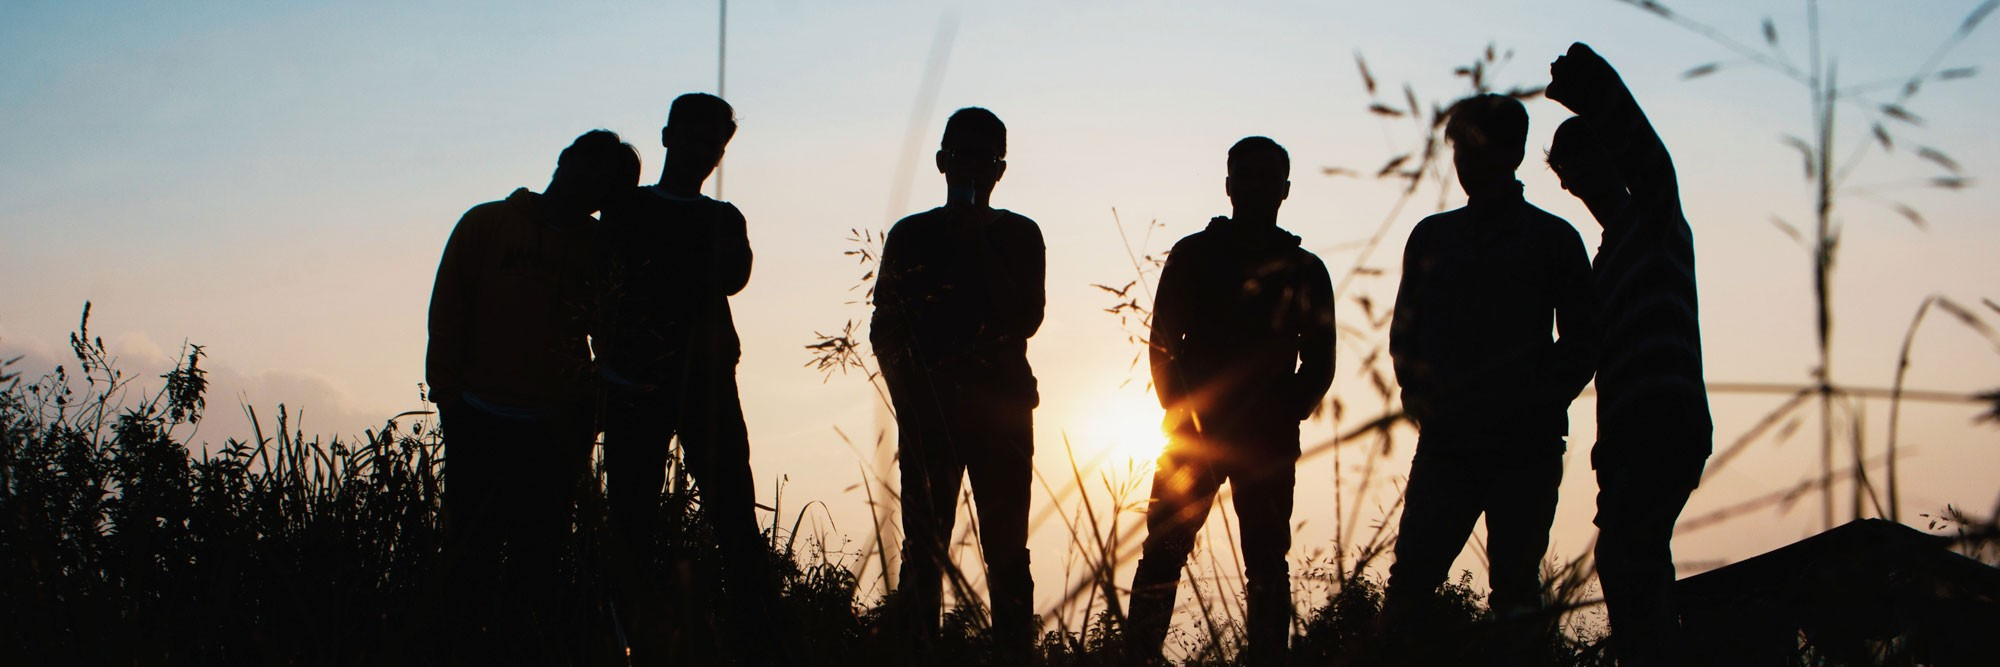 Young boys or men standing in a field in silhouette